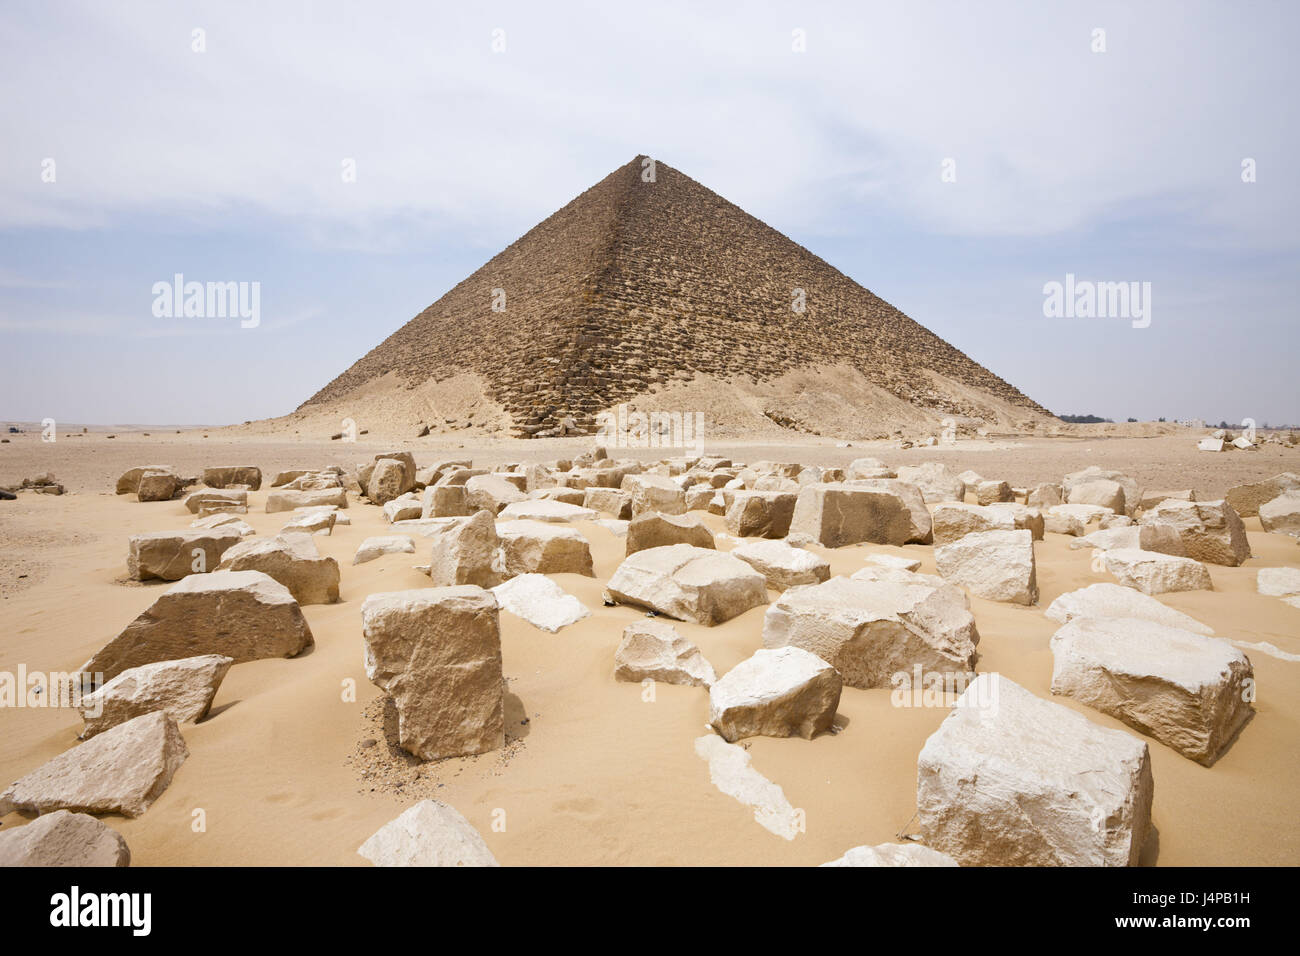 Pyramide Rouge du pharaon Snofru, Egypte, Dahschur, Photo Stock